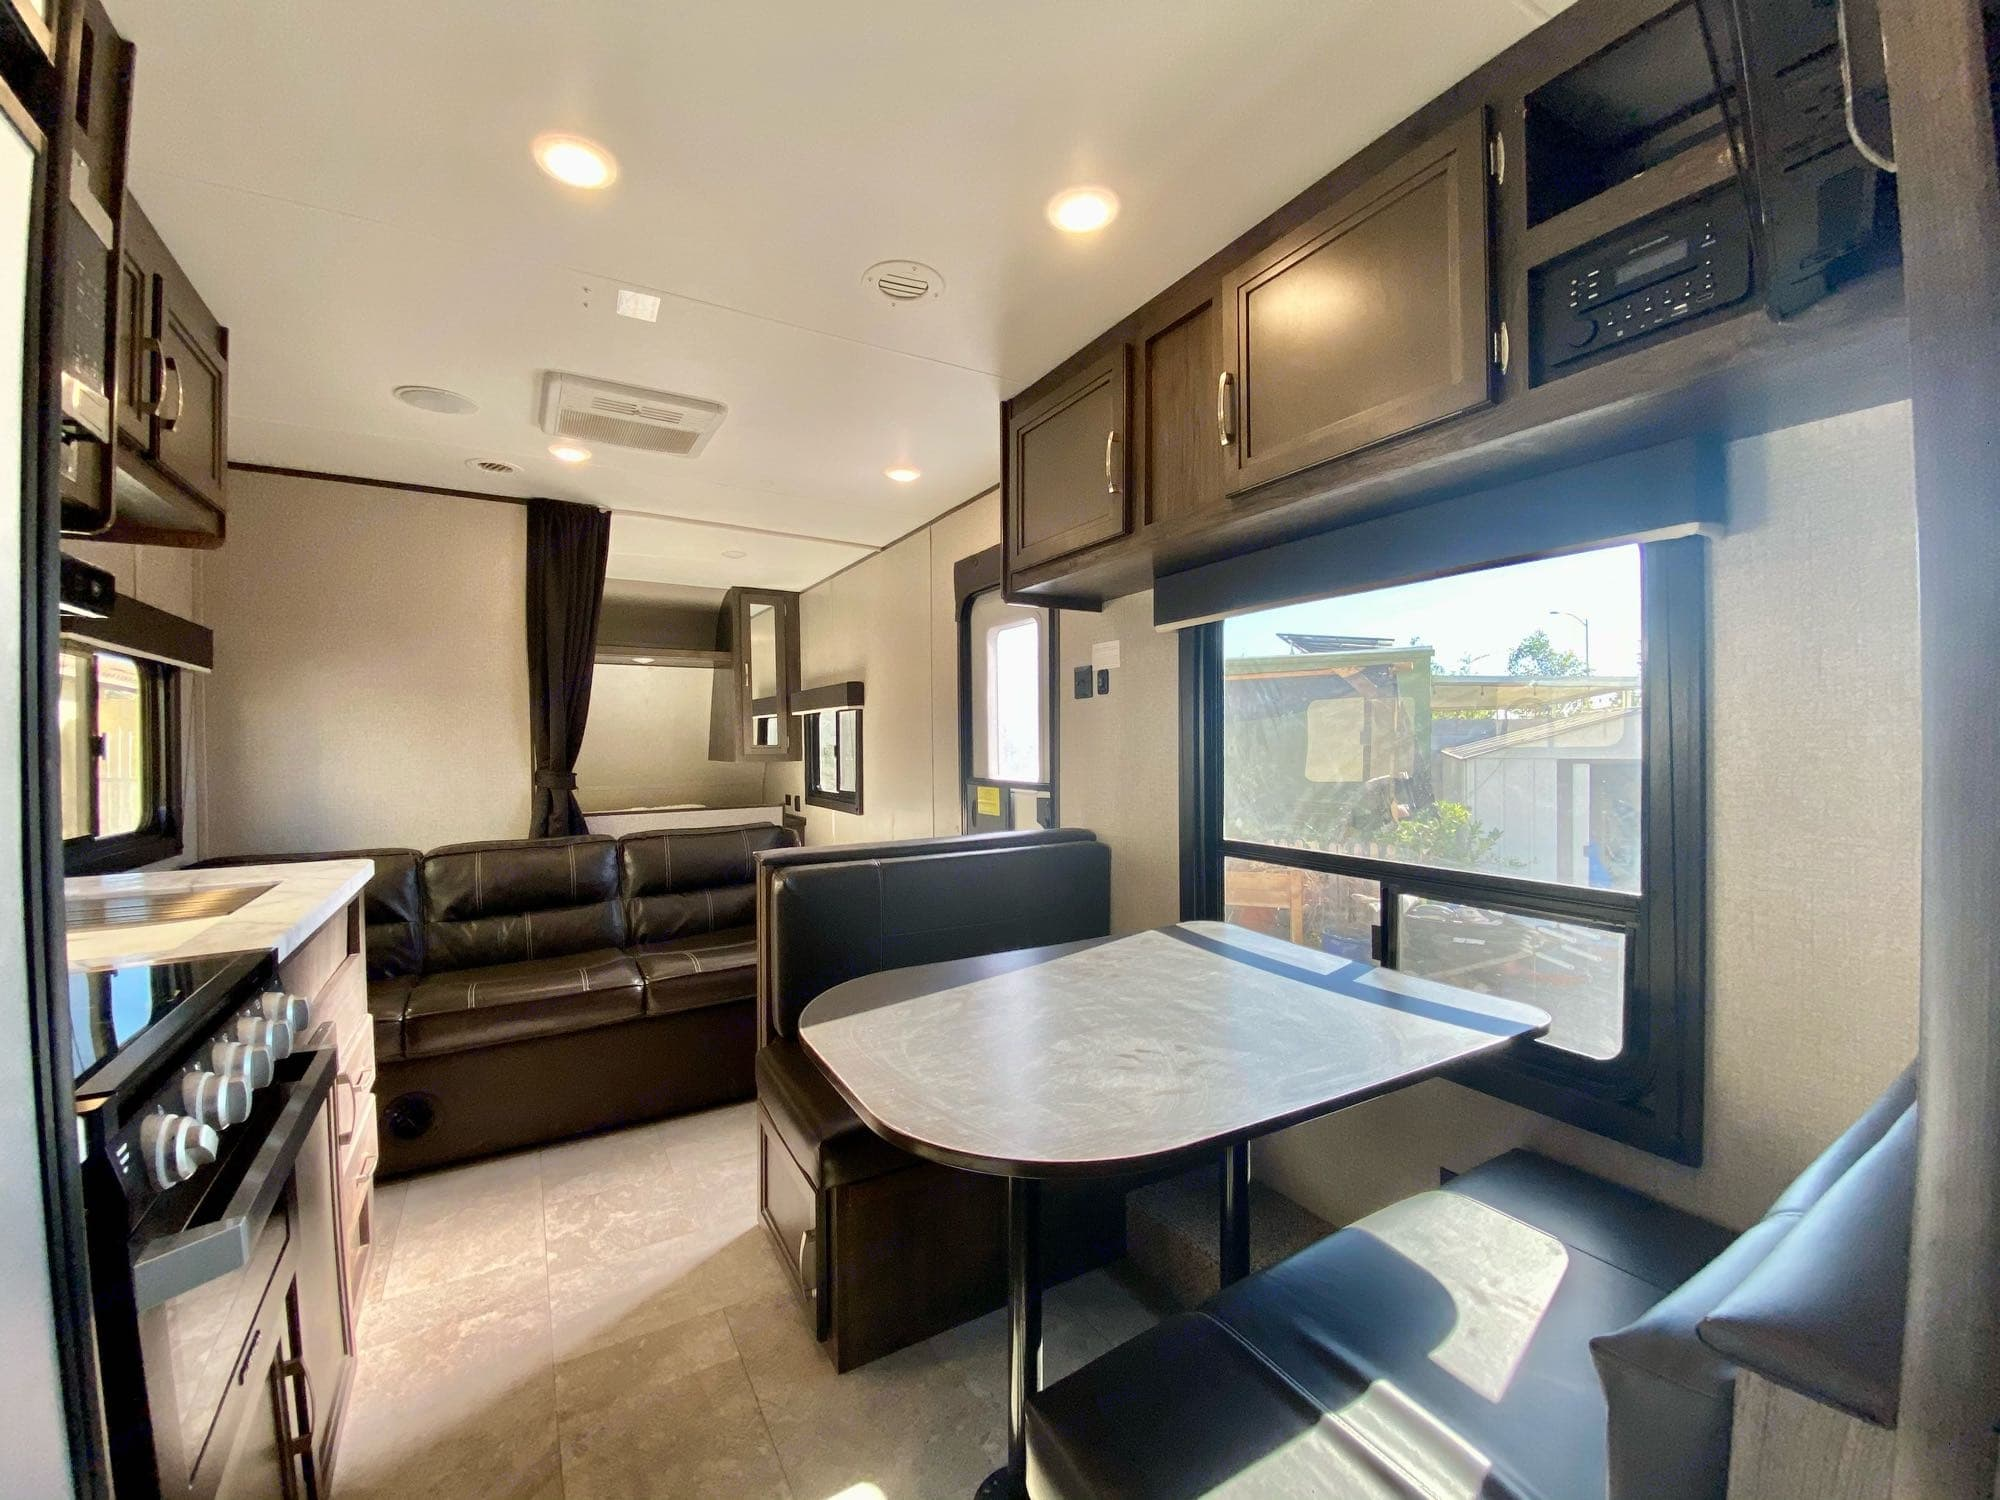 Dinette turns into a bed when converted. It's great for kids, not good for over  people taller than 6'1''  or over 215lbs.. Jayco JayFlight 2020